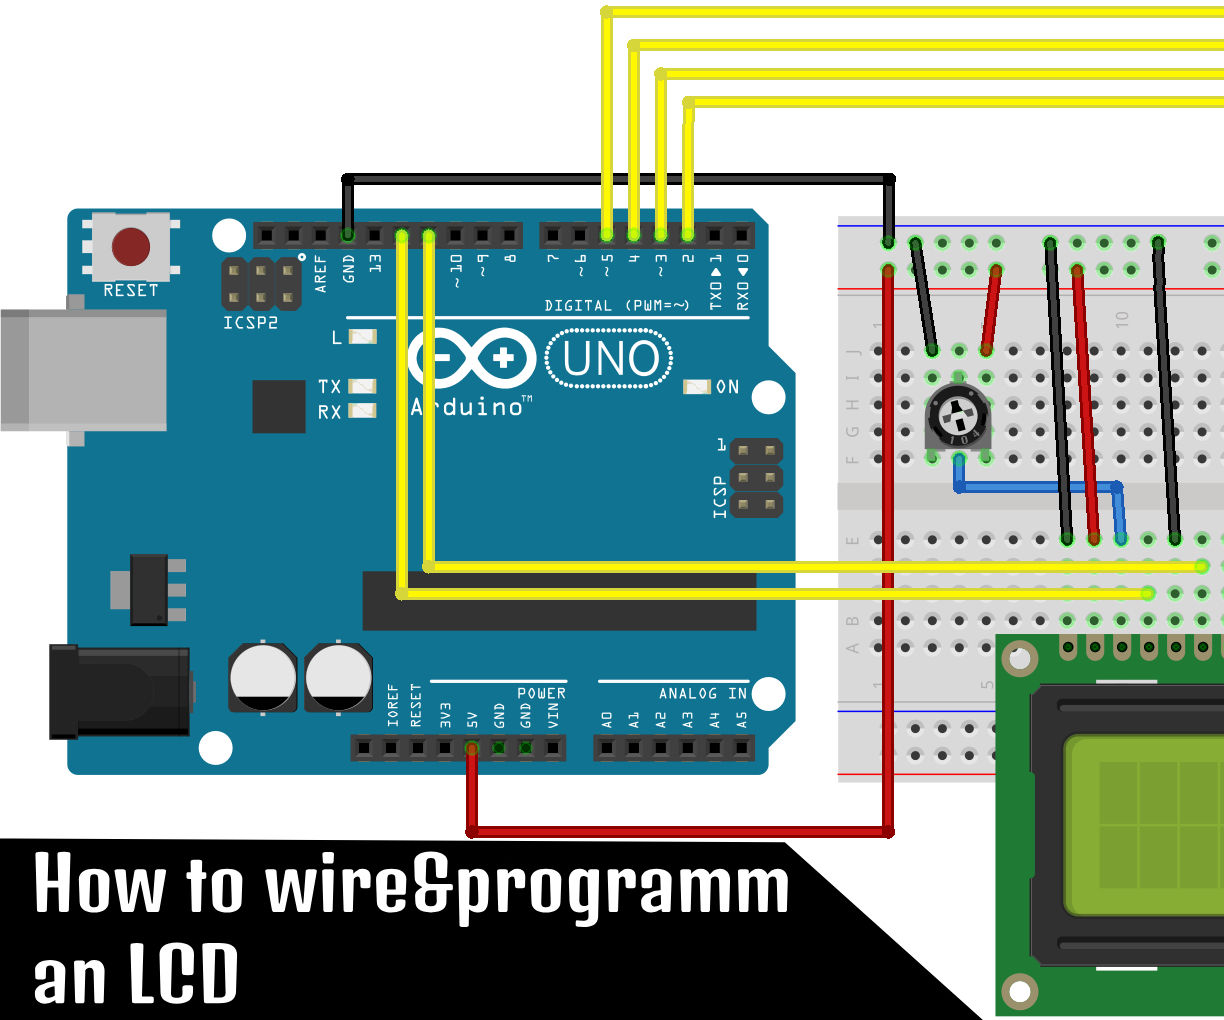 How to Use an LCD With an Arduino